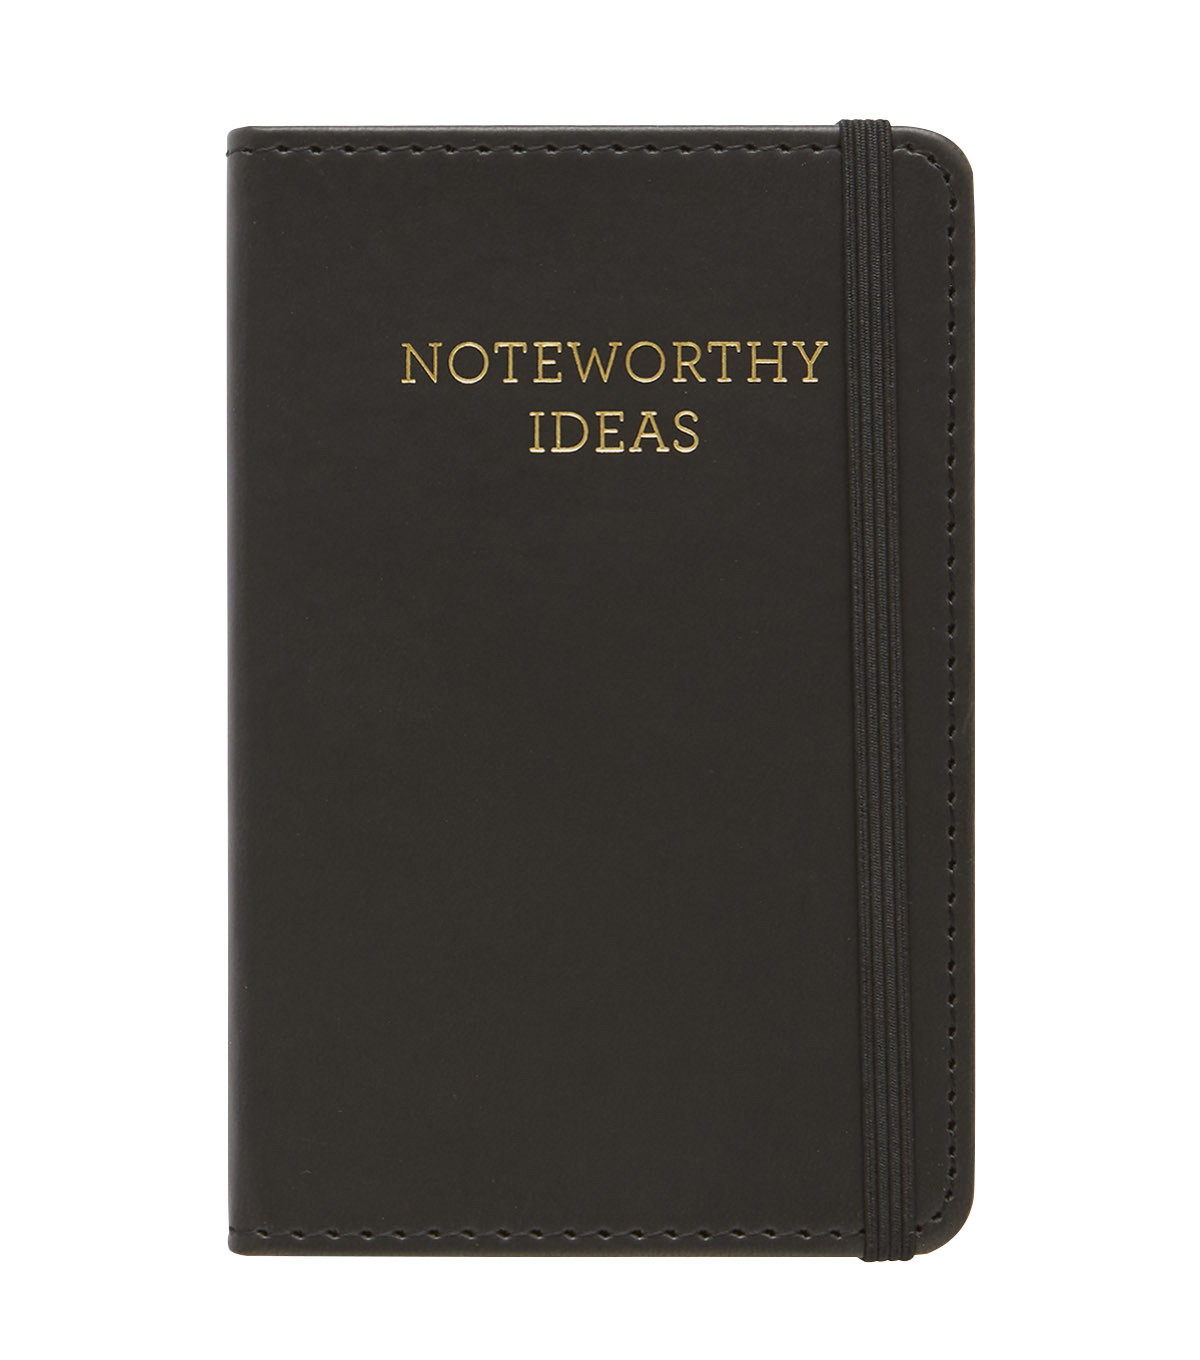 Park Lane Small Journal-Black Noteworthy